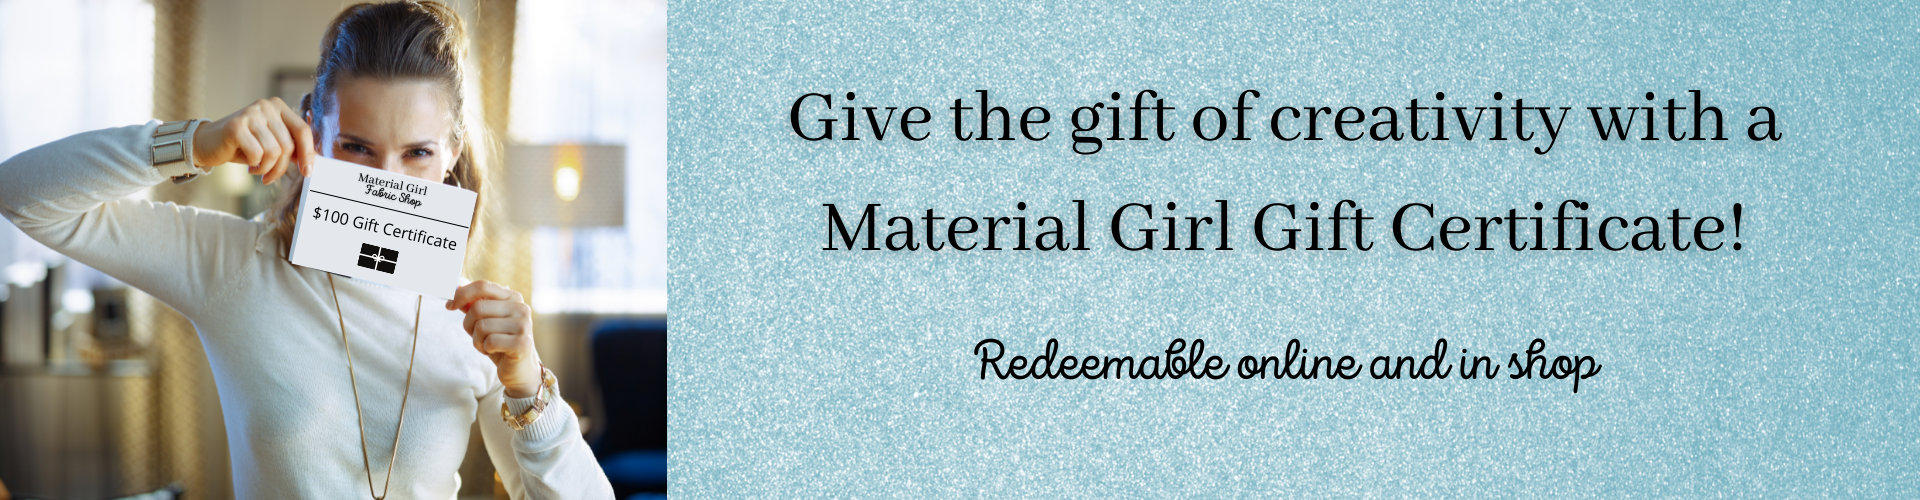 Material Girl Fabric Shop online gift cards for quilting